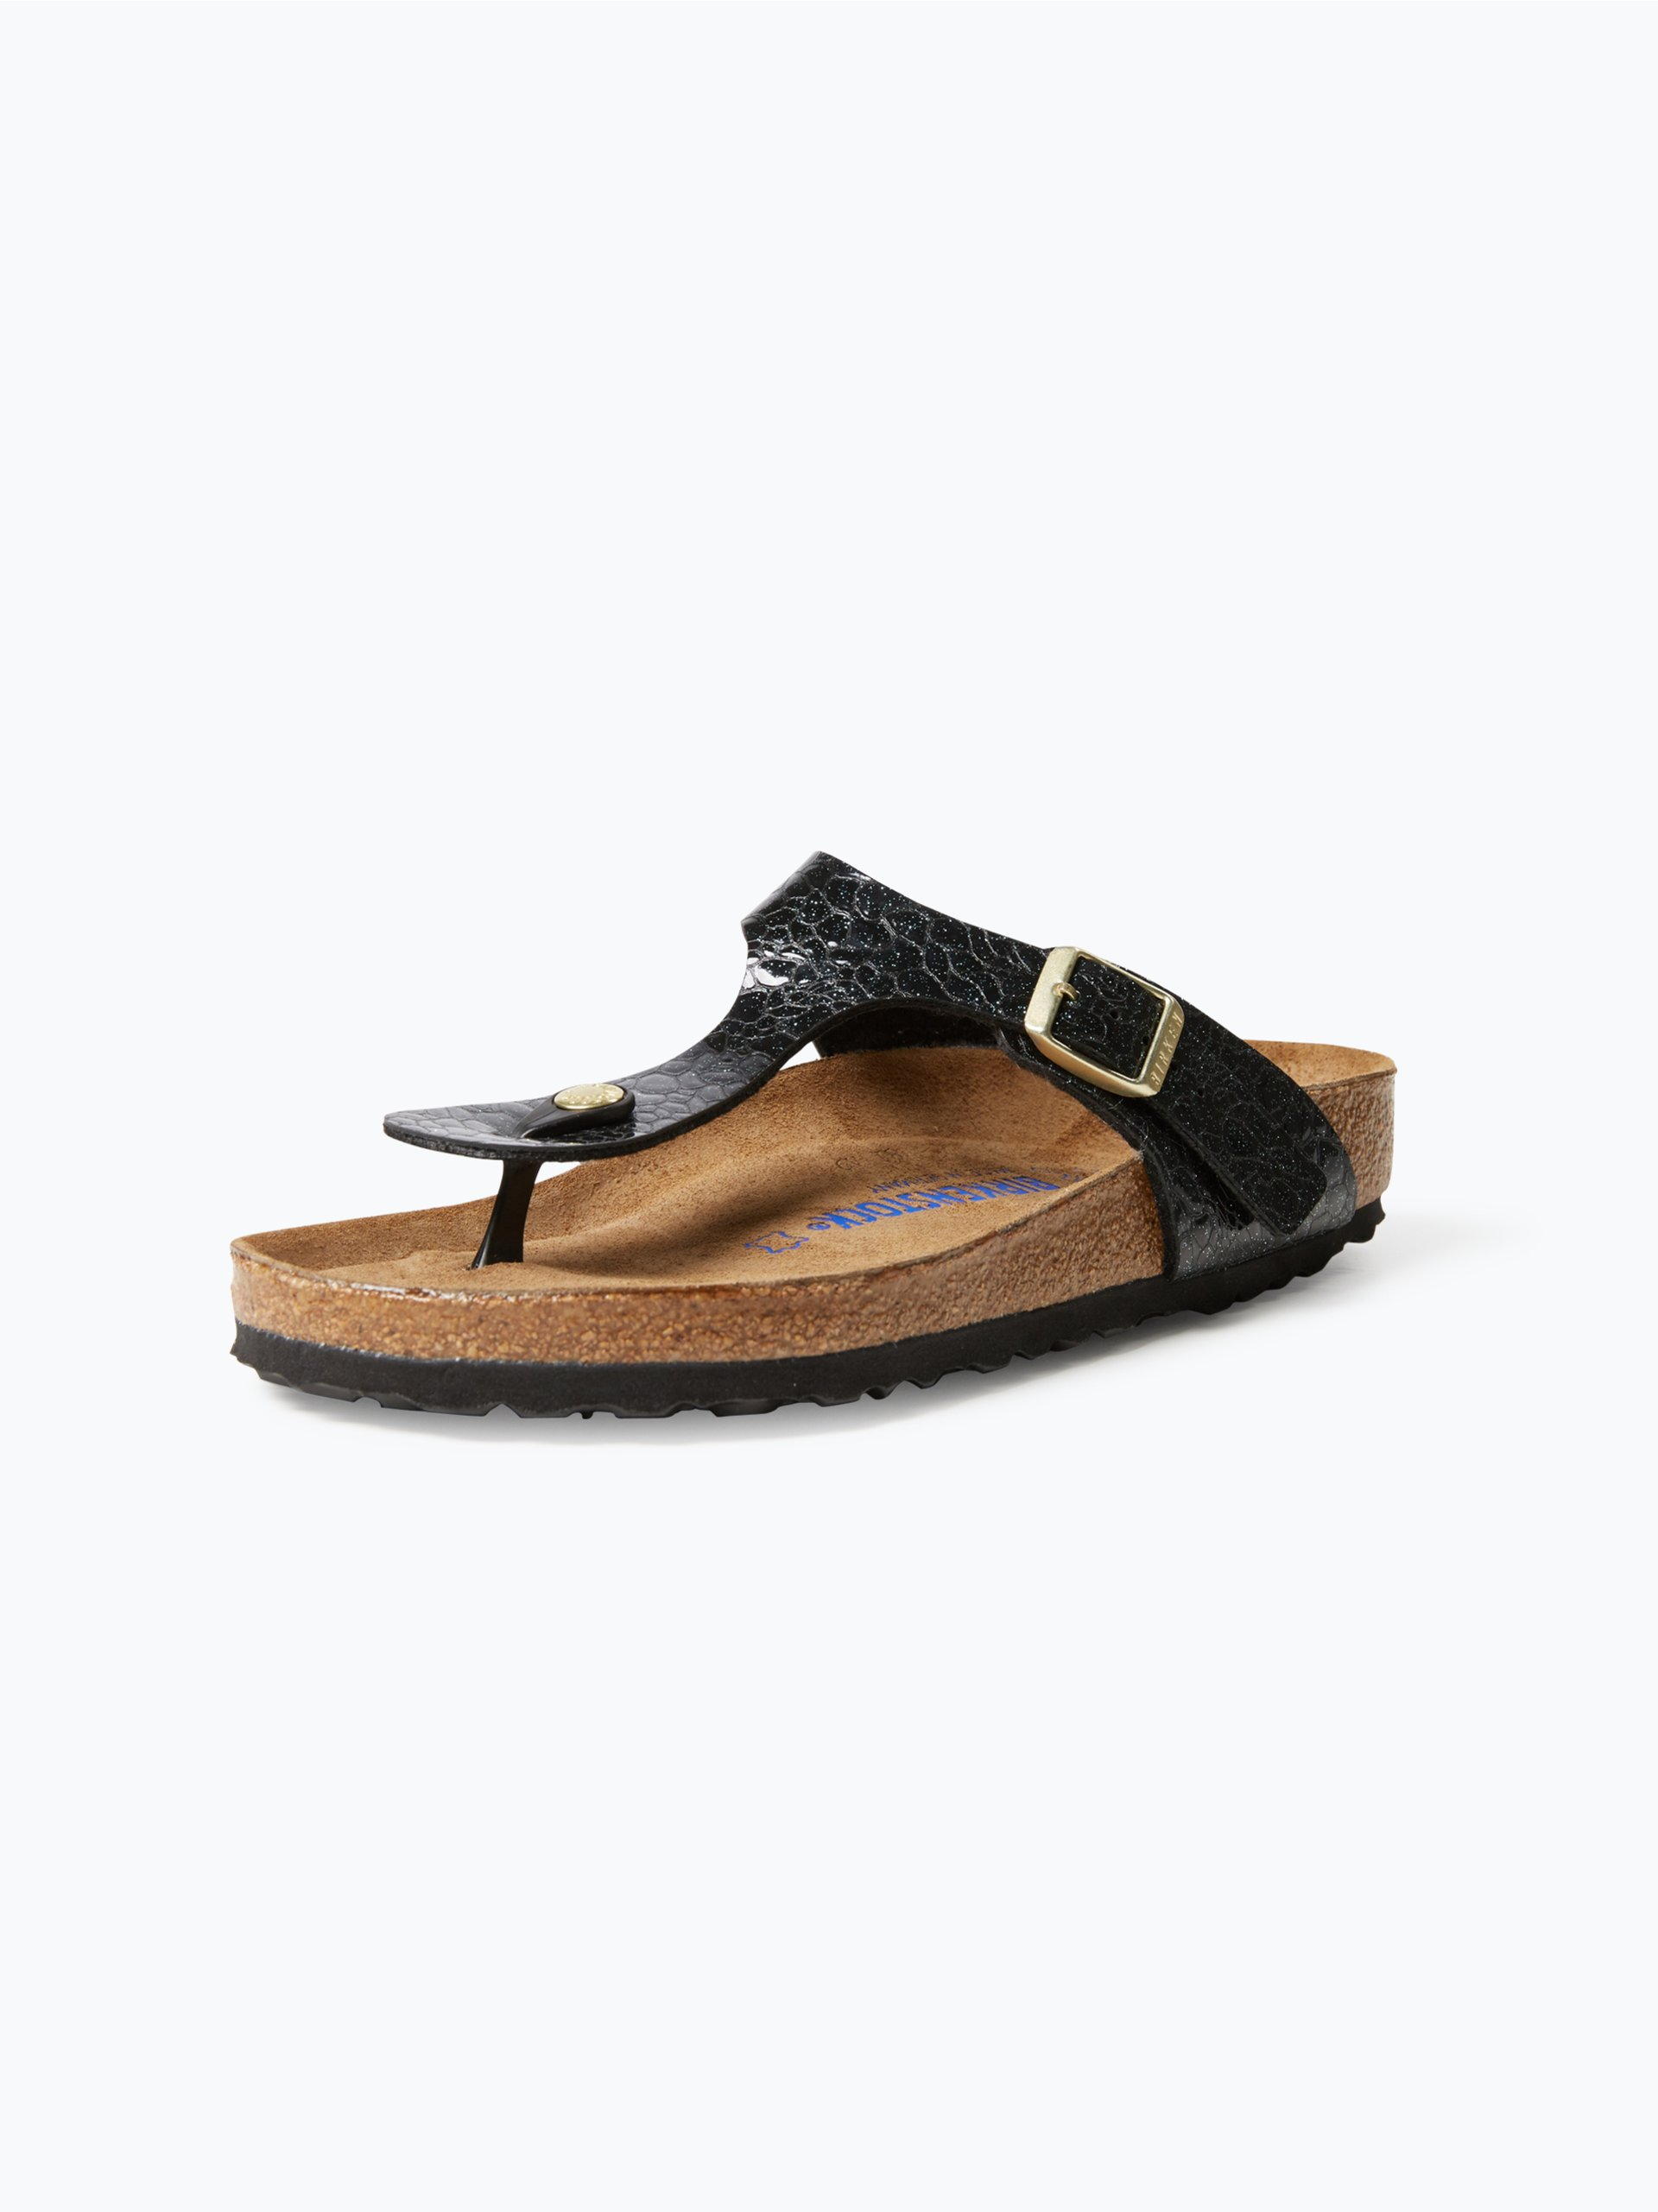 birkenstock damen sandalen mit leder anteil schwarz gemustert online kaufen vangraaf com. Black Bedroom Furniture Sets. Home Design Ideas